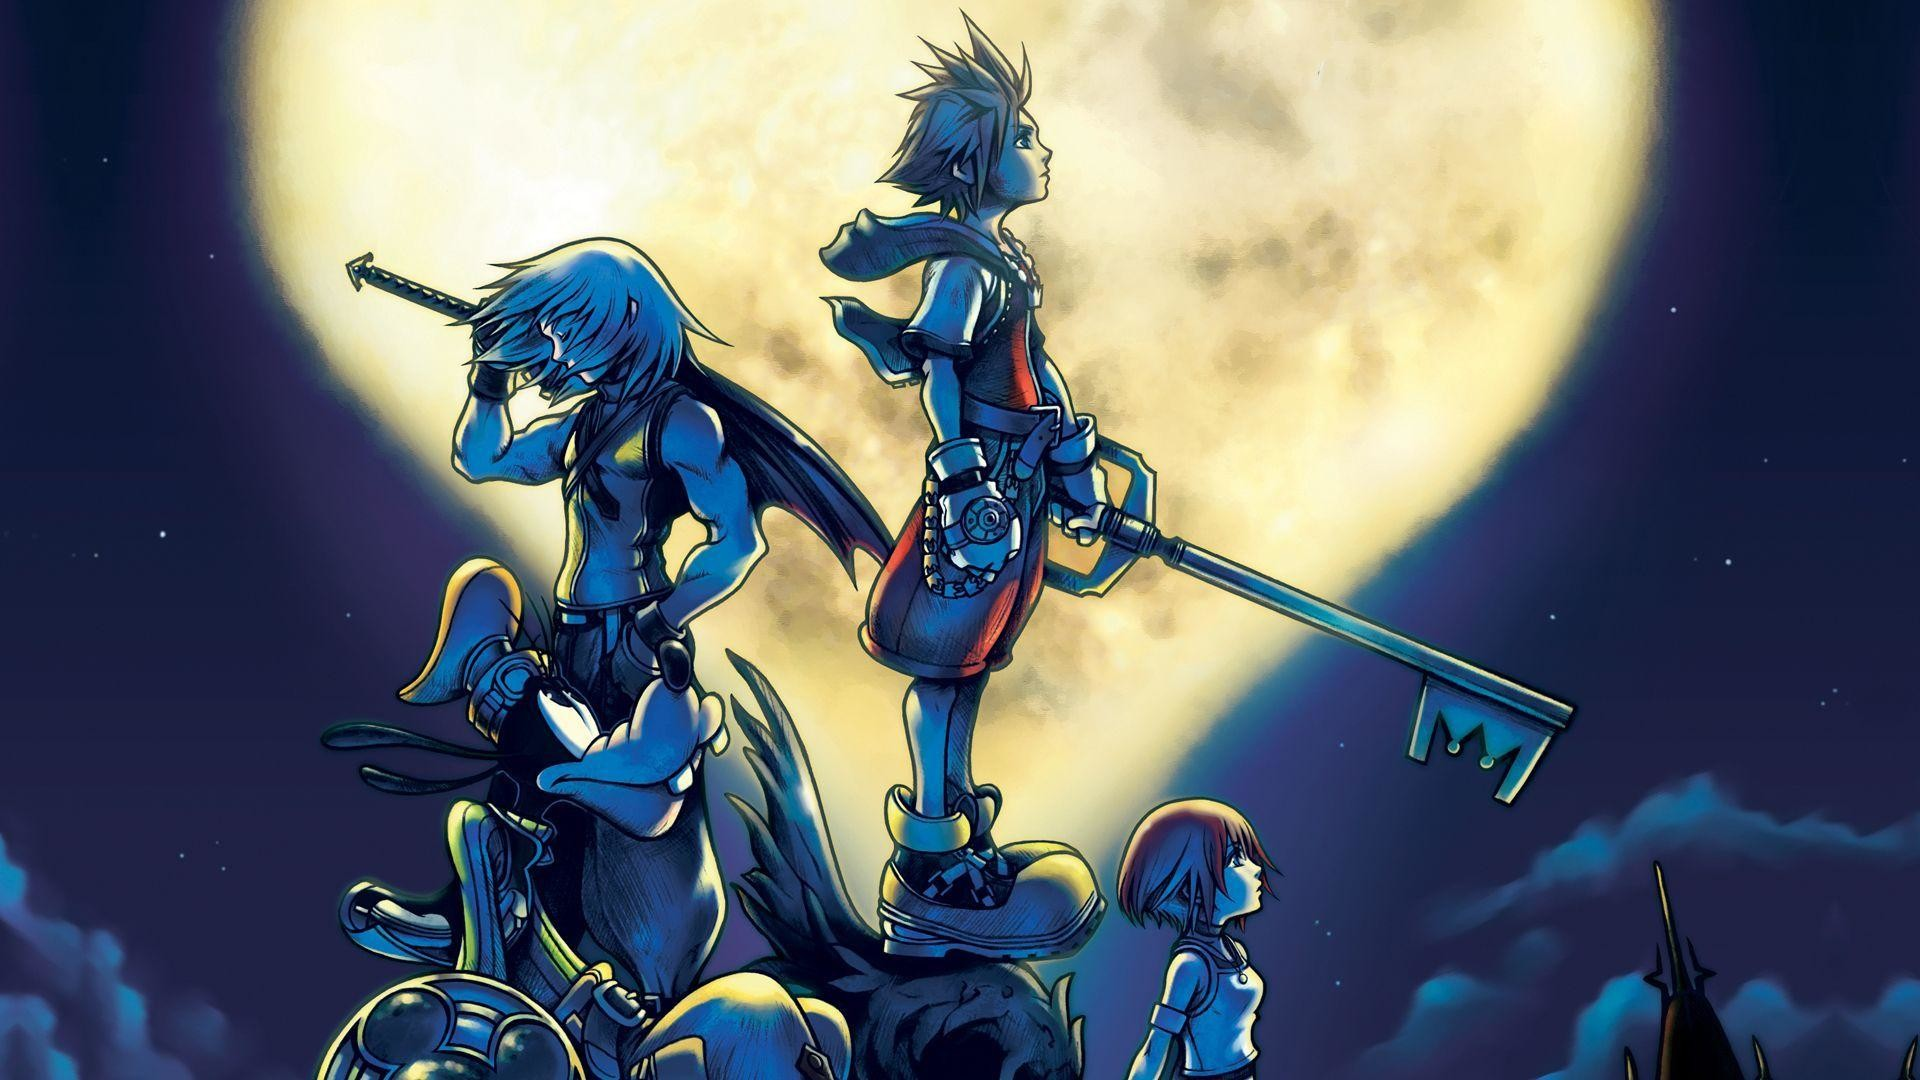 Kingdom Hearts Sora Wallpaper 1920x1080 Kingdom Hearts 1 Wallp...